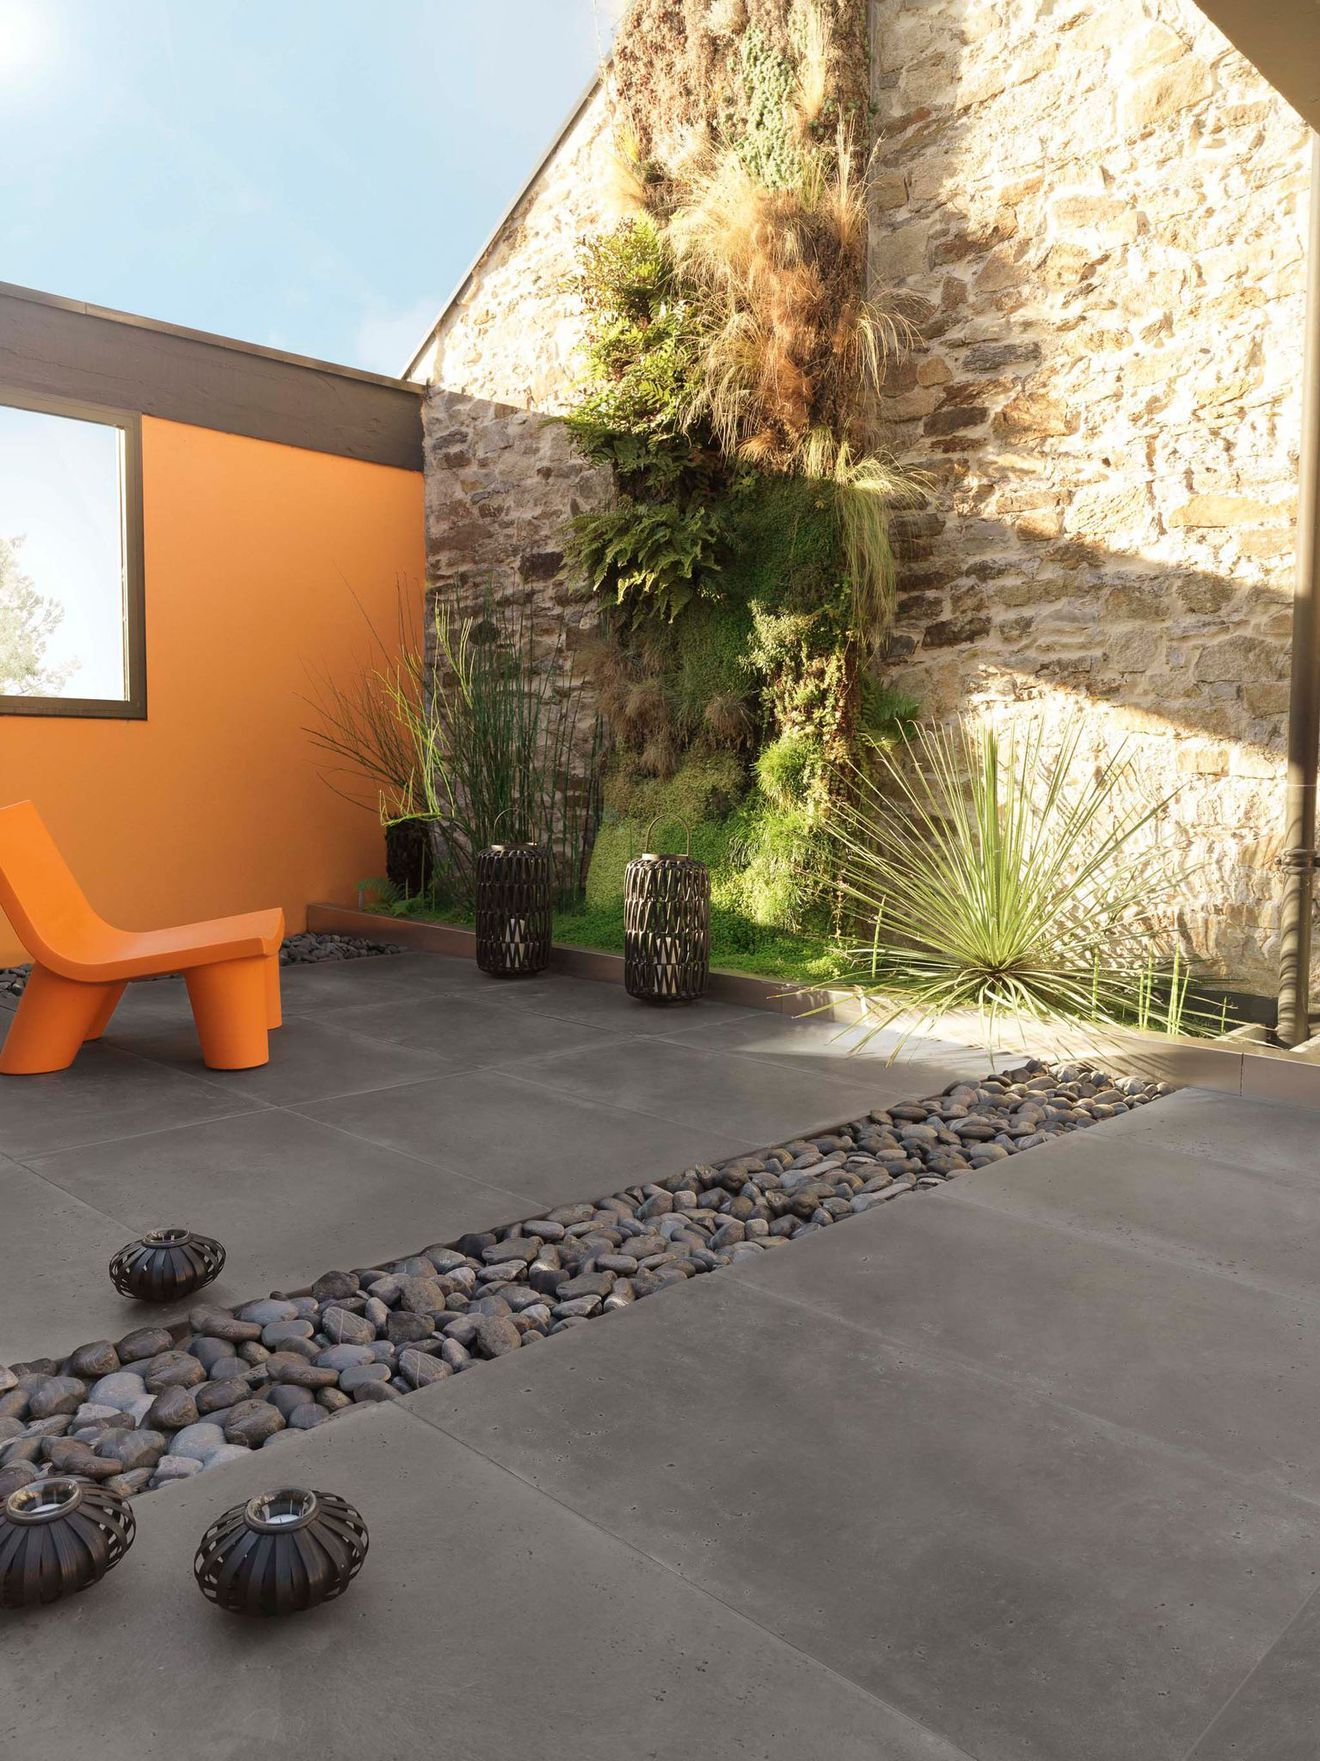 Terrasse carrelages et dallages pour l 39 ext rieur for Decoration jardin exterieur en pierre